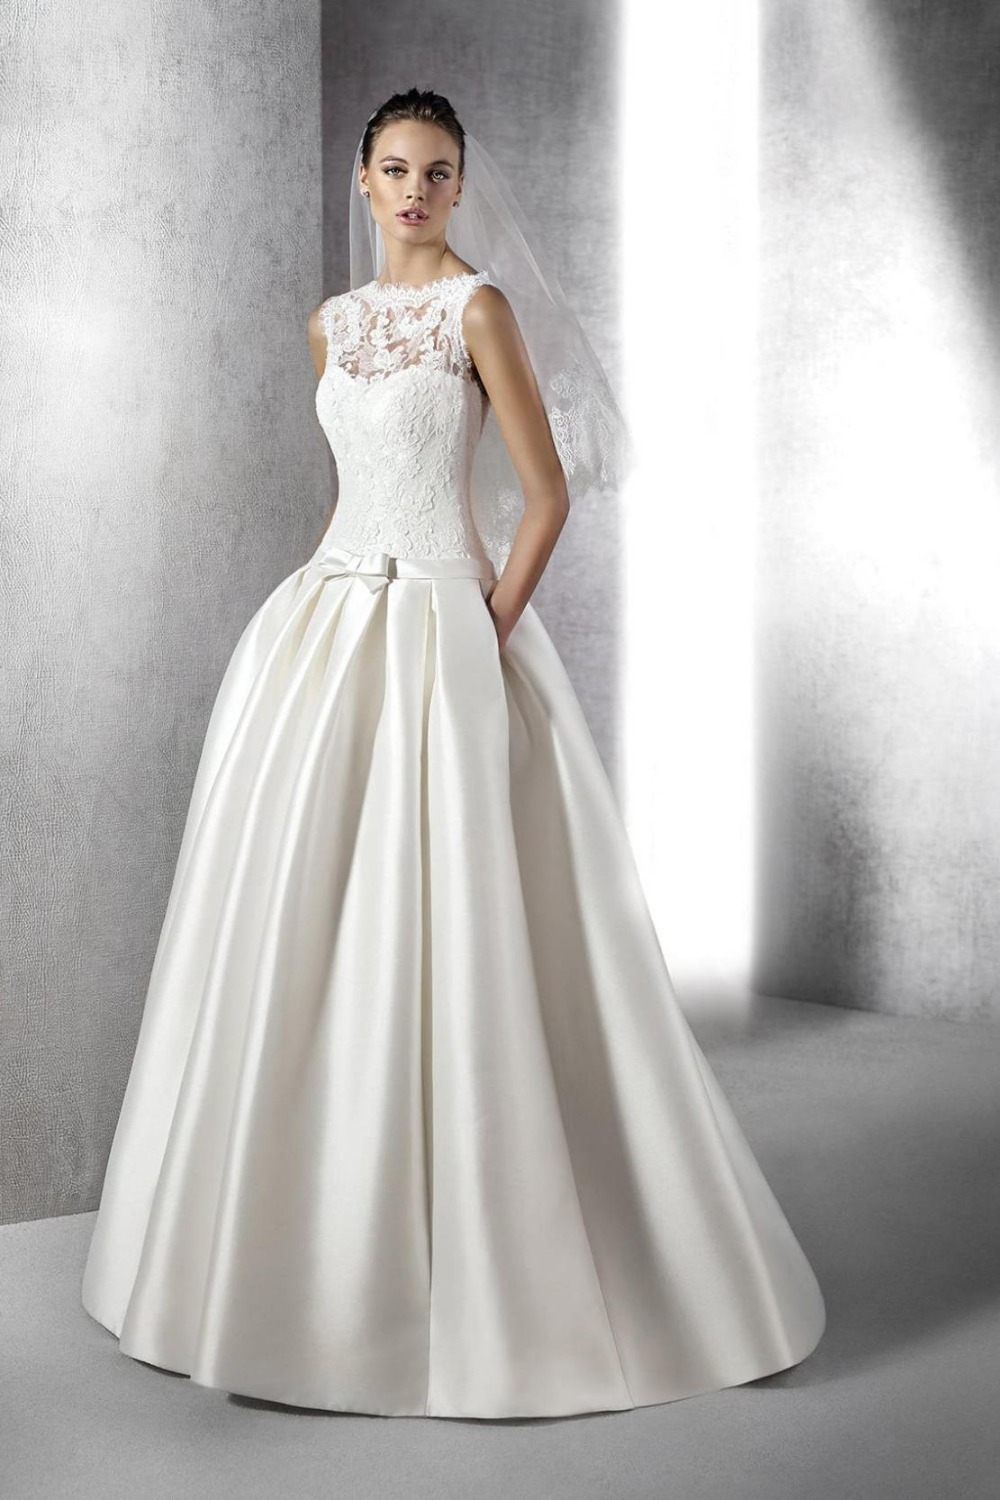 Beautiful Large Size Wedding Dress For Promotional With European Dresses